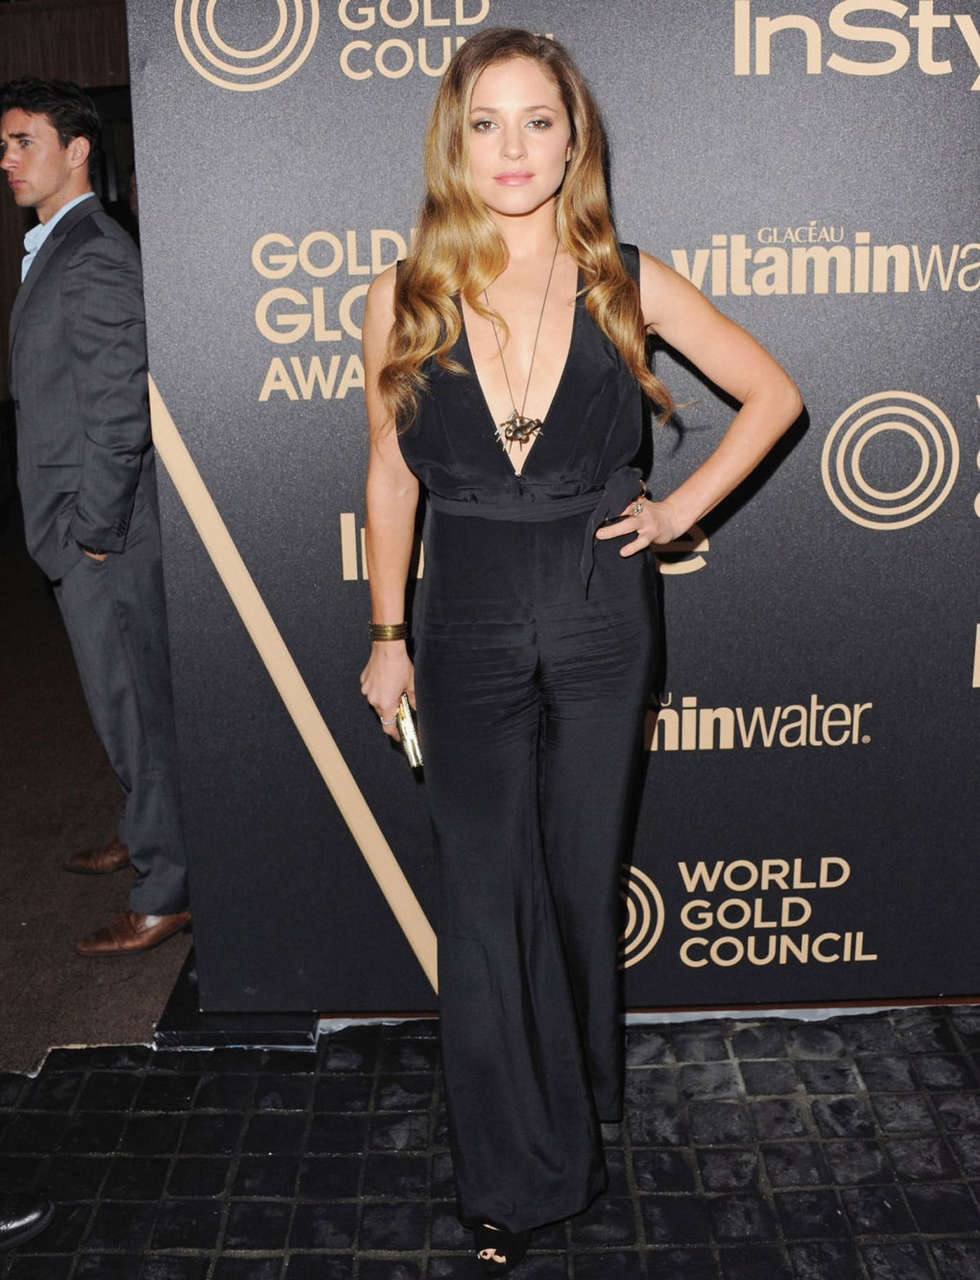 Margarita Levieva 2013 Hfpa Instyle Miss Golden Globe Party Los Angeles